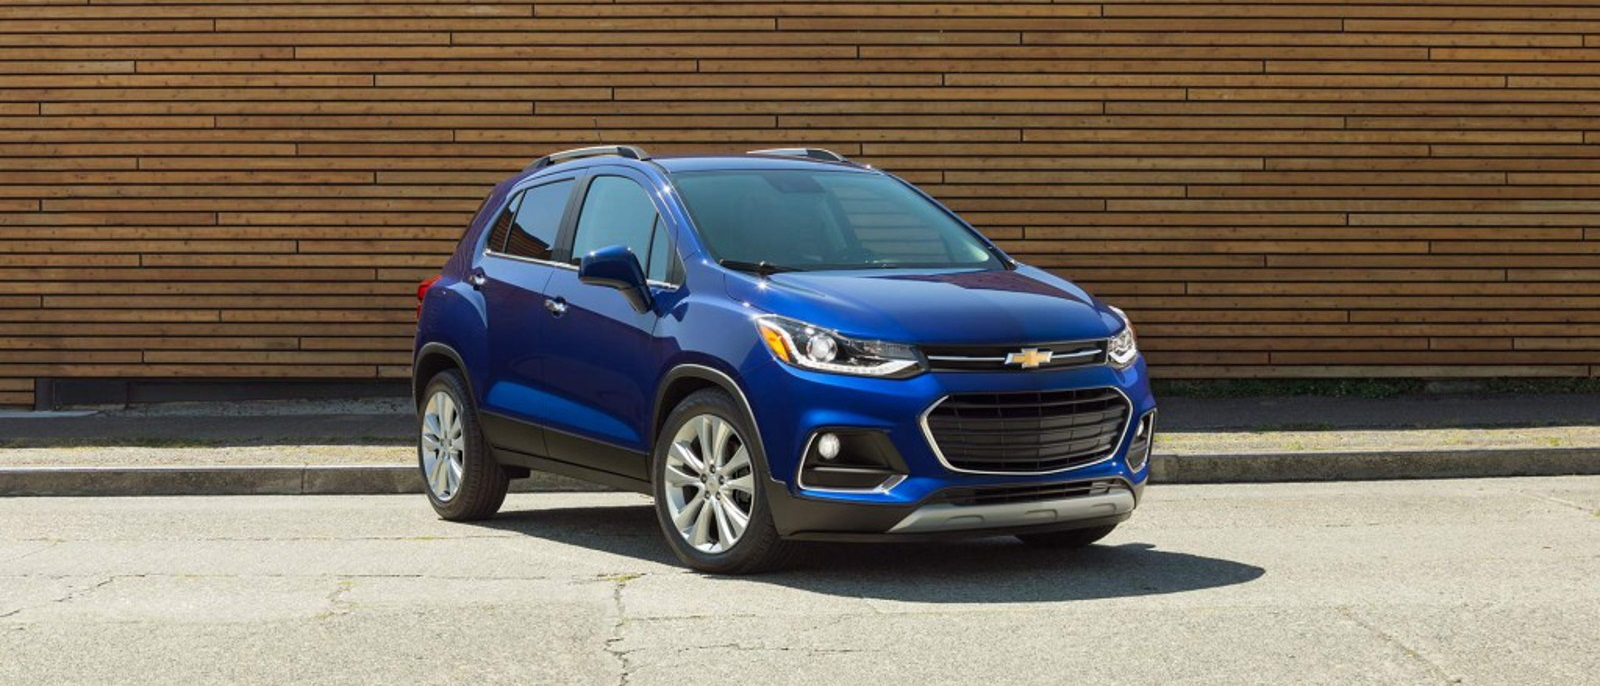 the 2017 chevrolet trax returns with all-new tech and styling